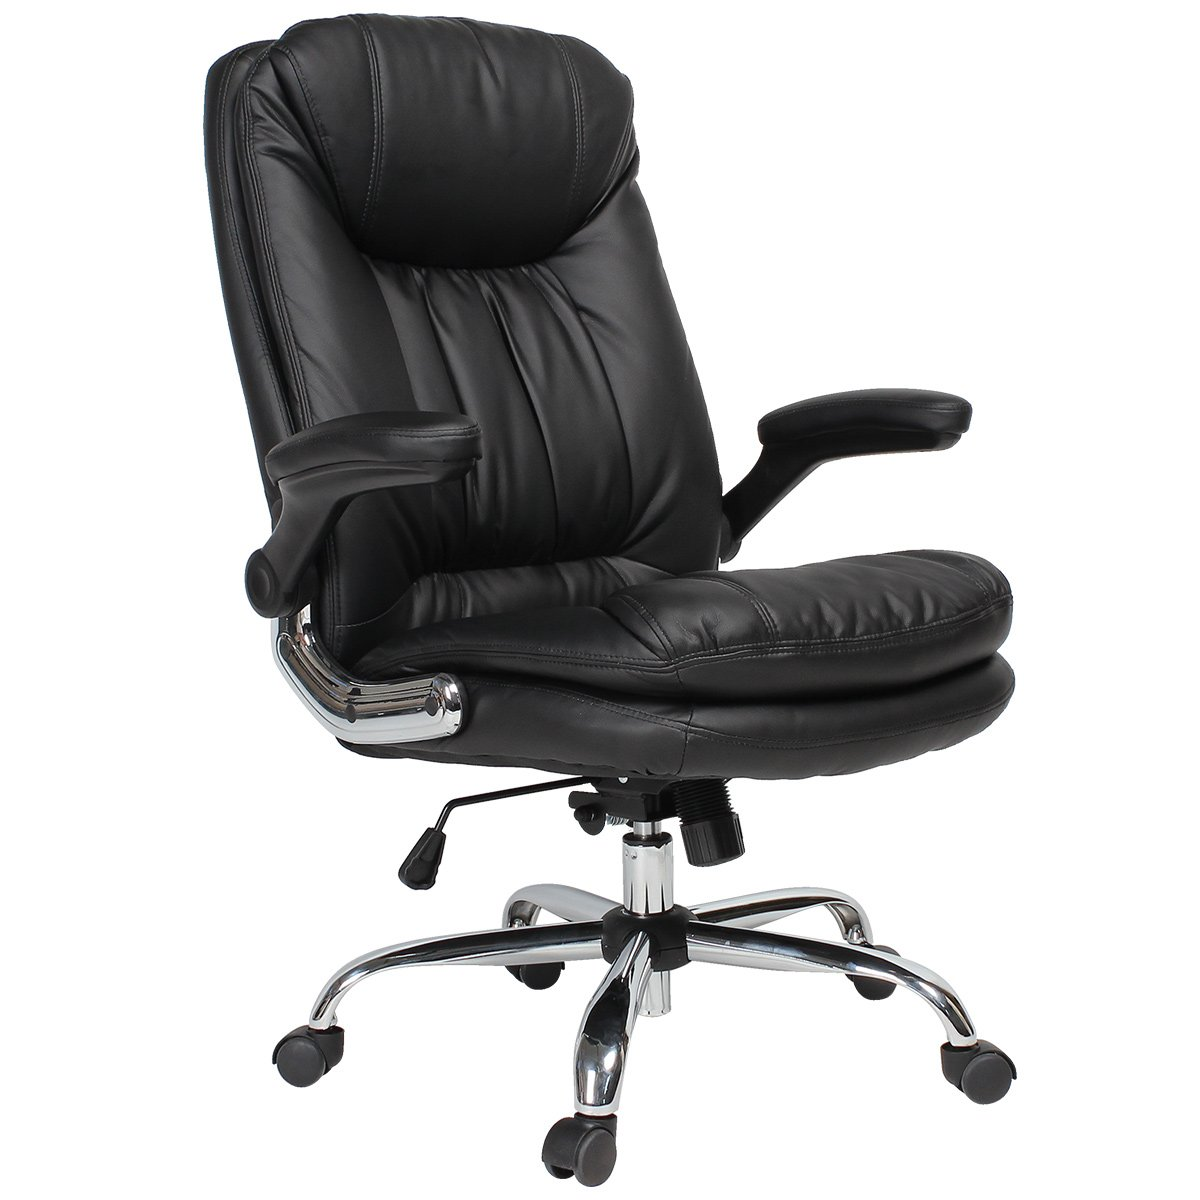 YAMASORO Ergonomic Executive Office Chair - High-Back Office Desk Chairs Leather Computer Chair Adjustable Tilt Angle and Flip-up Arms Big for Man and Women Black by YAMASORO